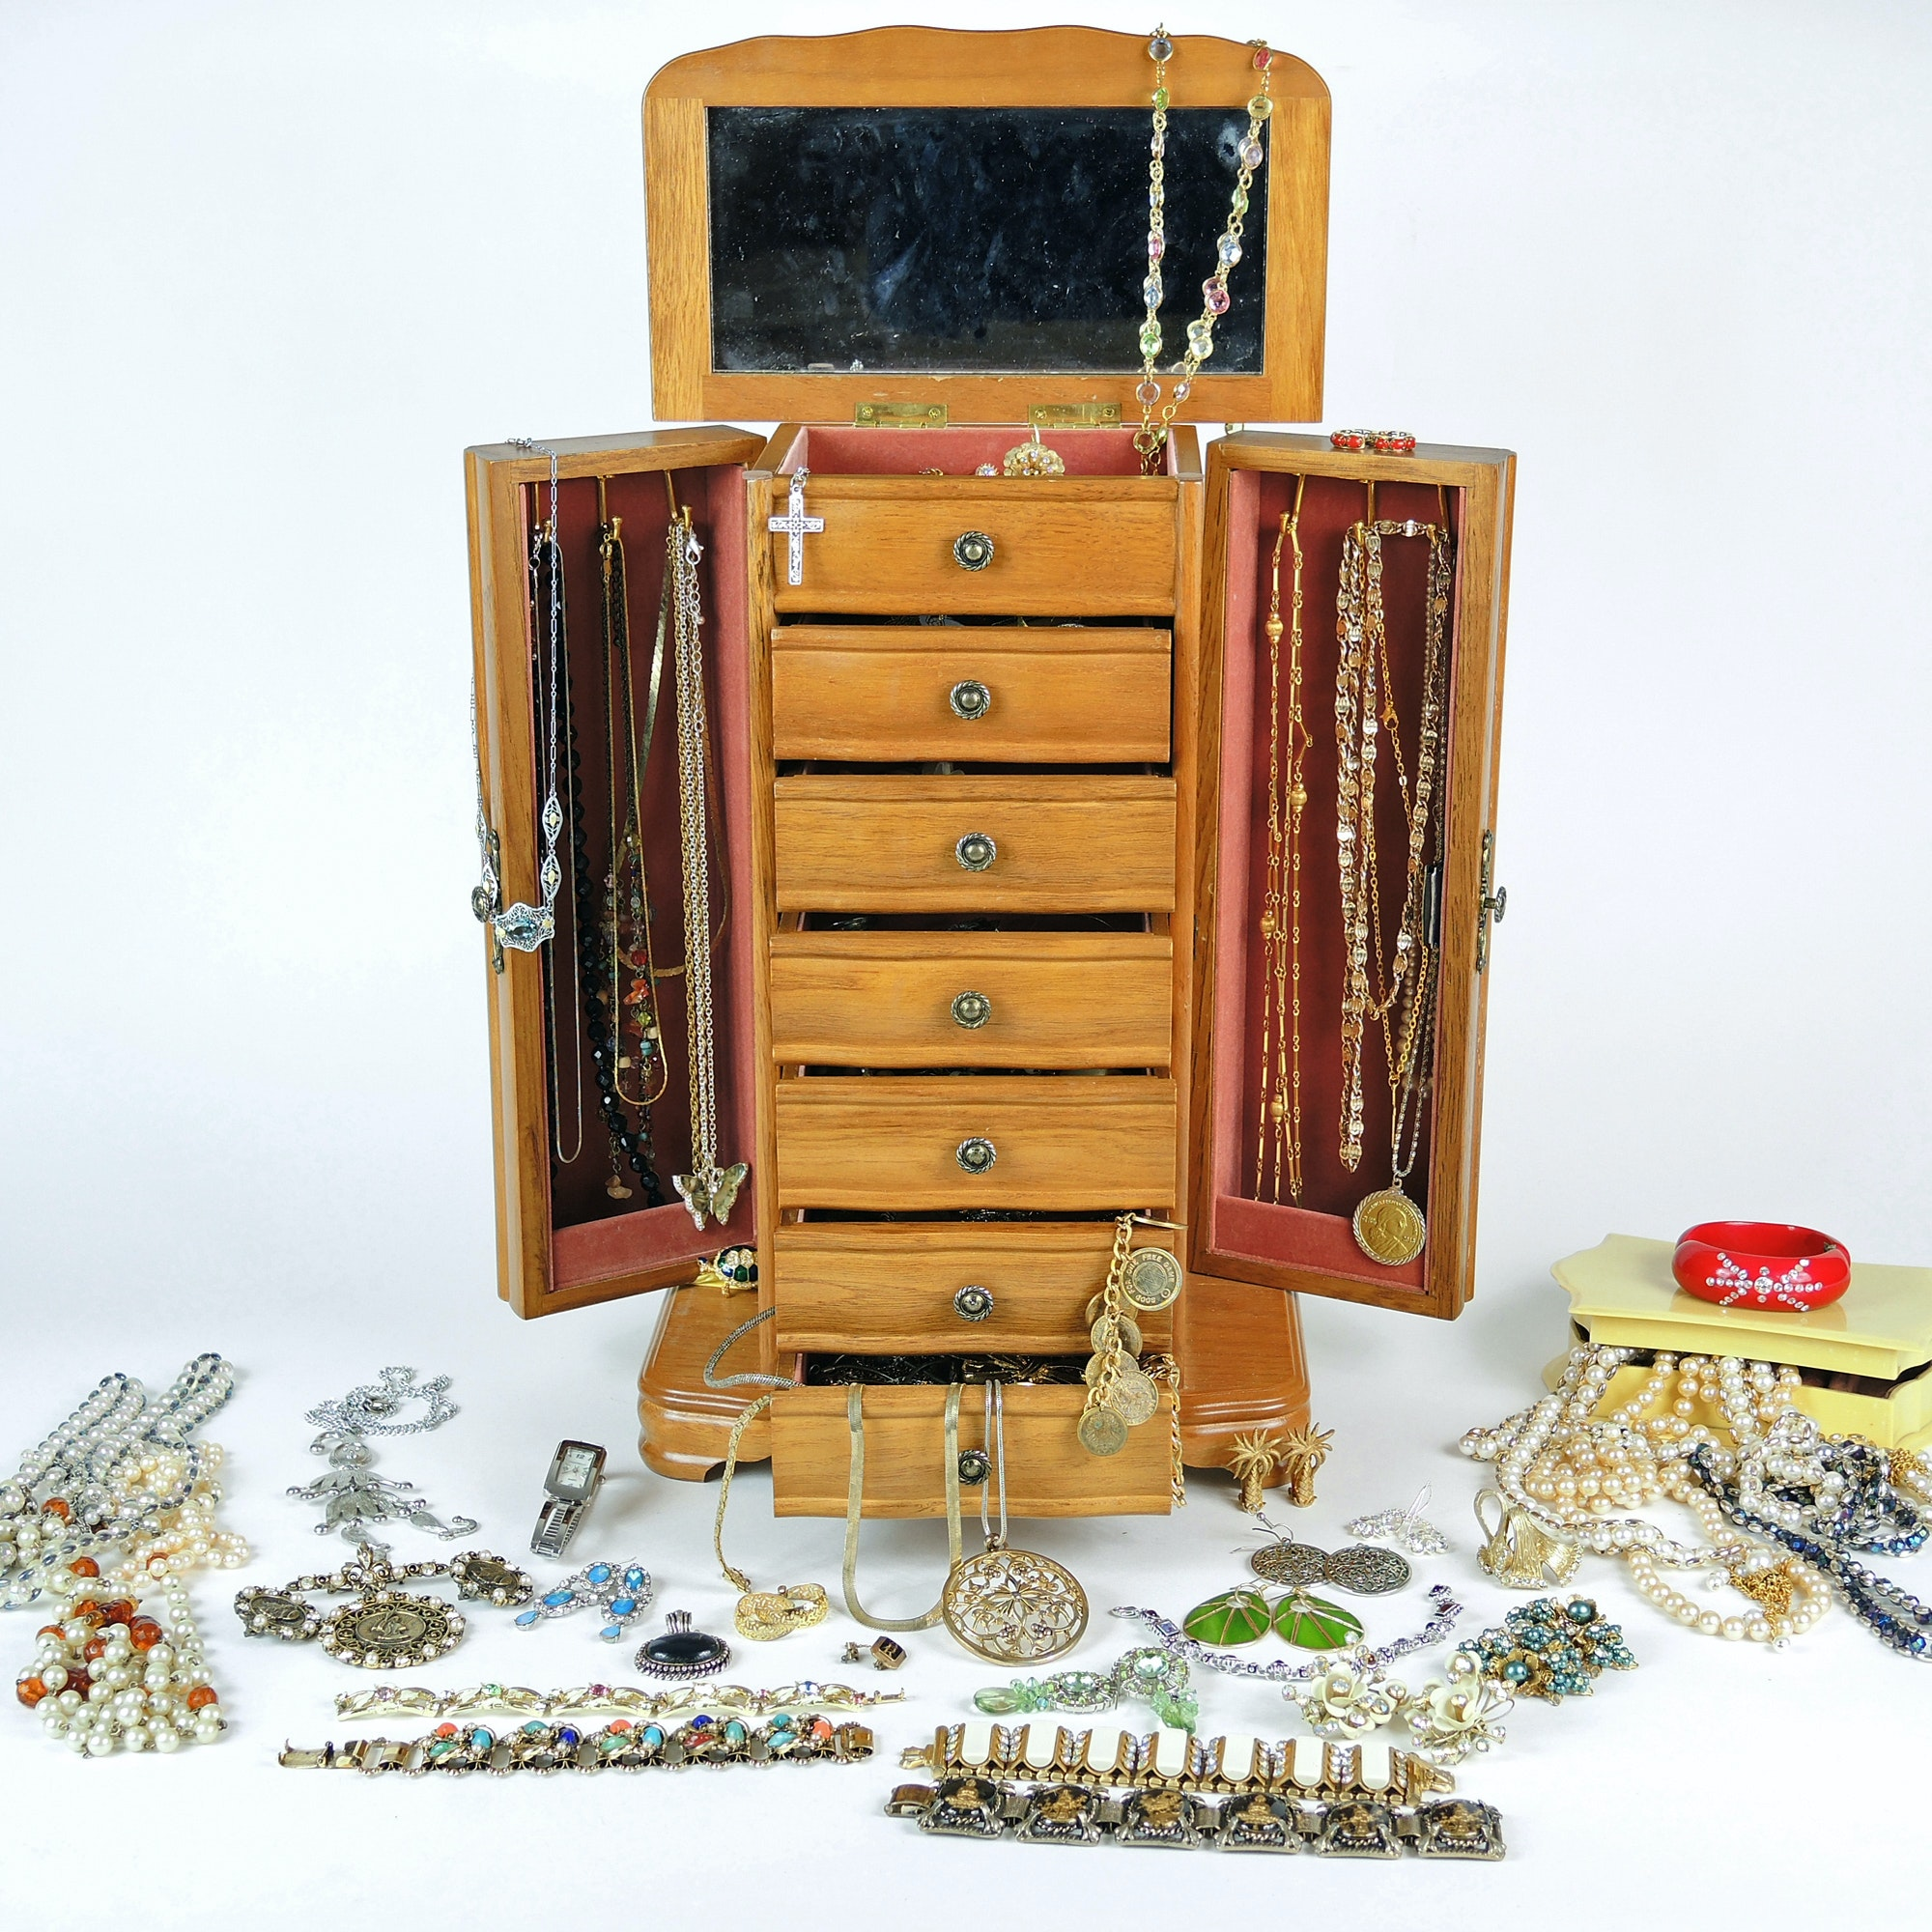 Costume Jewelry Assortment and Oak Chest